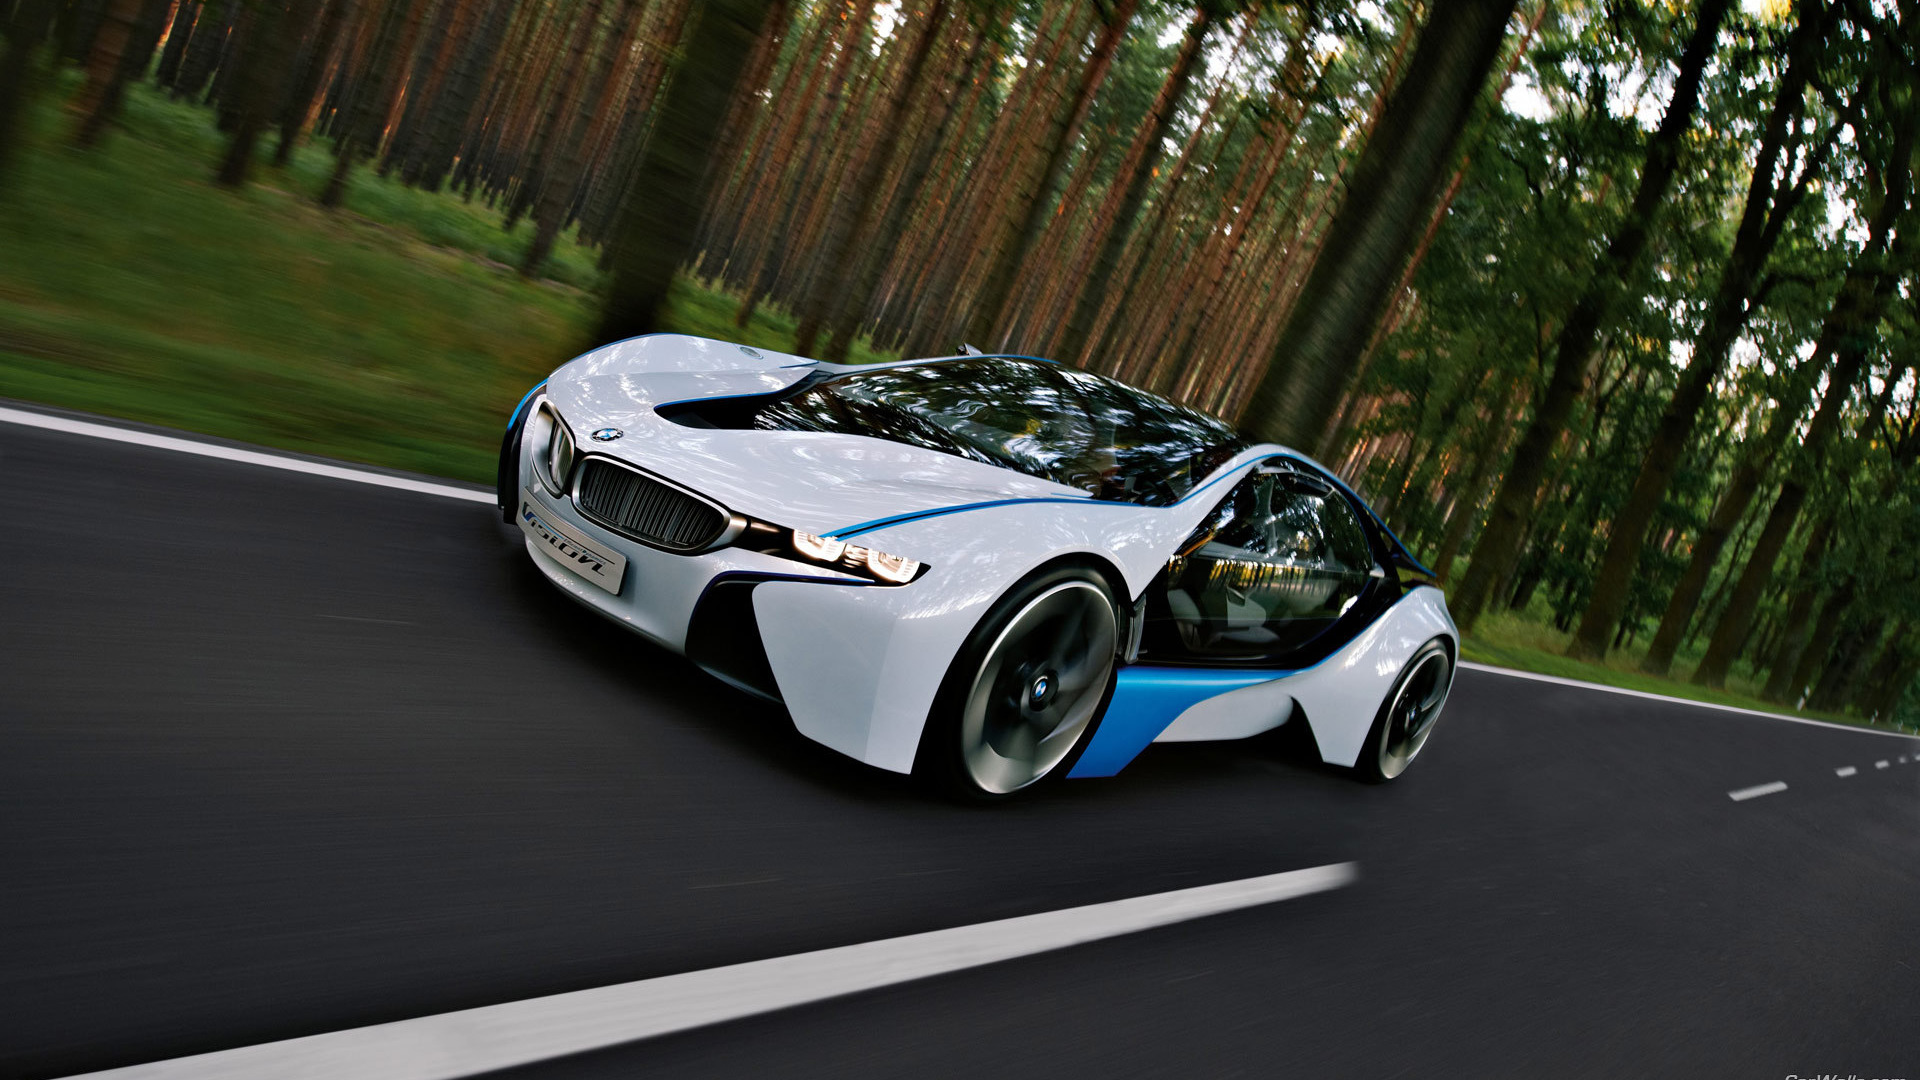 Bmw car 1920x1080 pixels full hd wallpapers collection tech bug